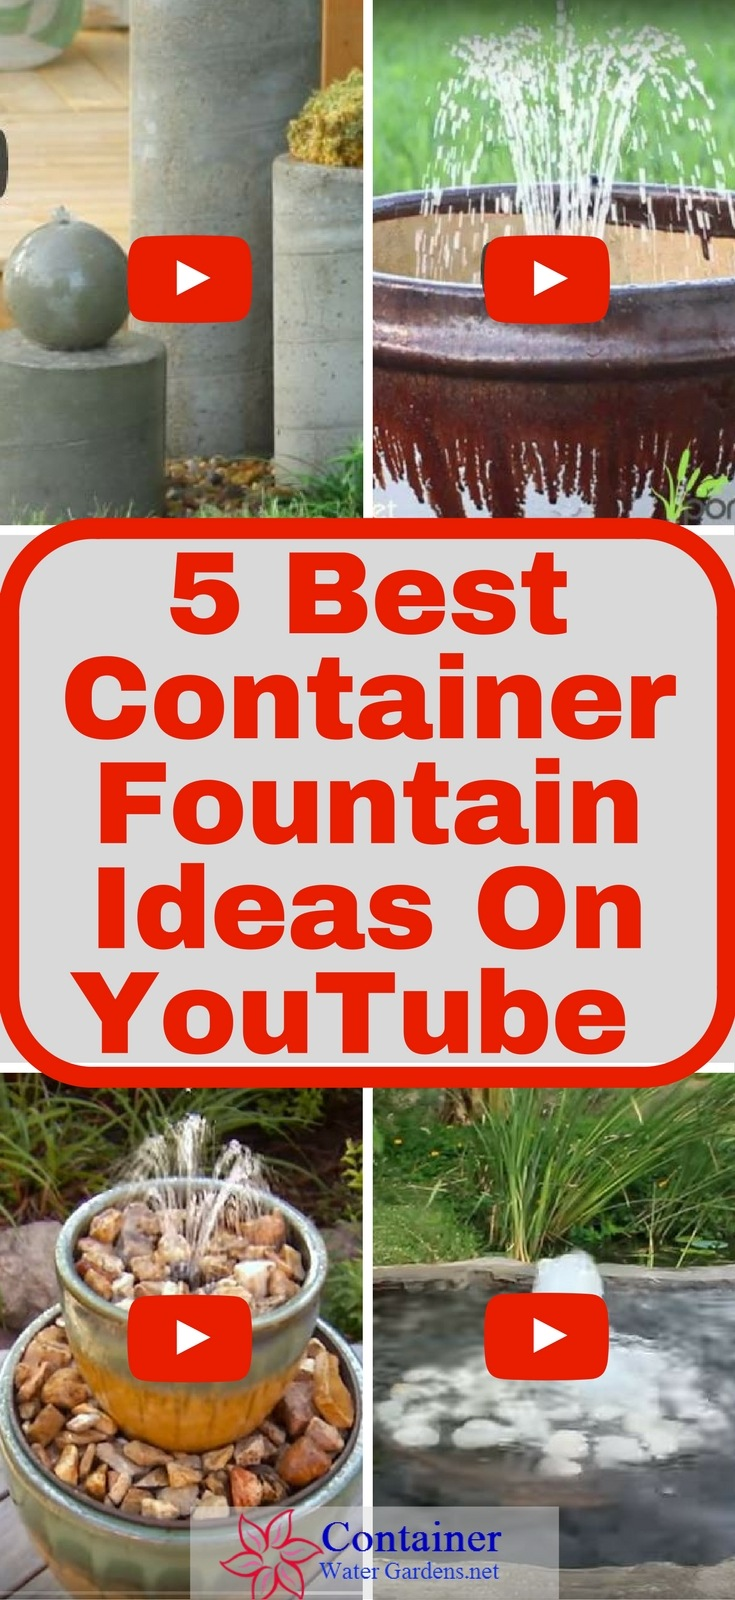 5 Best Container Fountain Ideas on YouTube